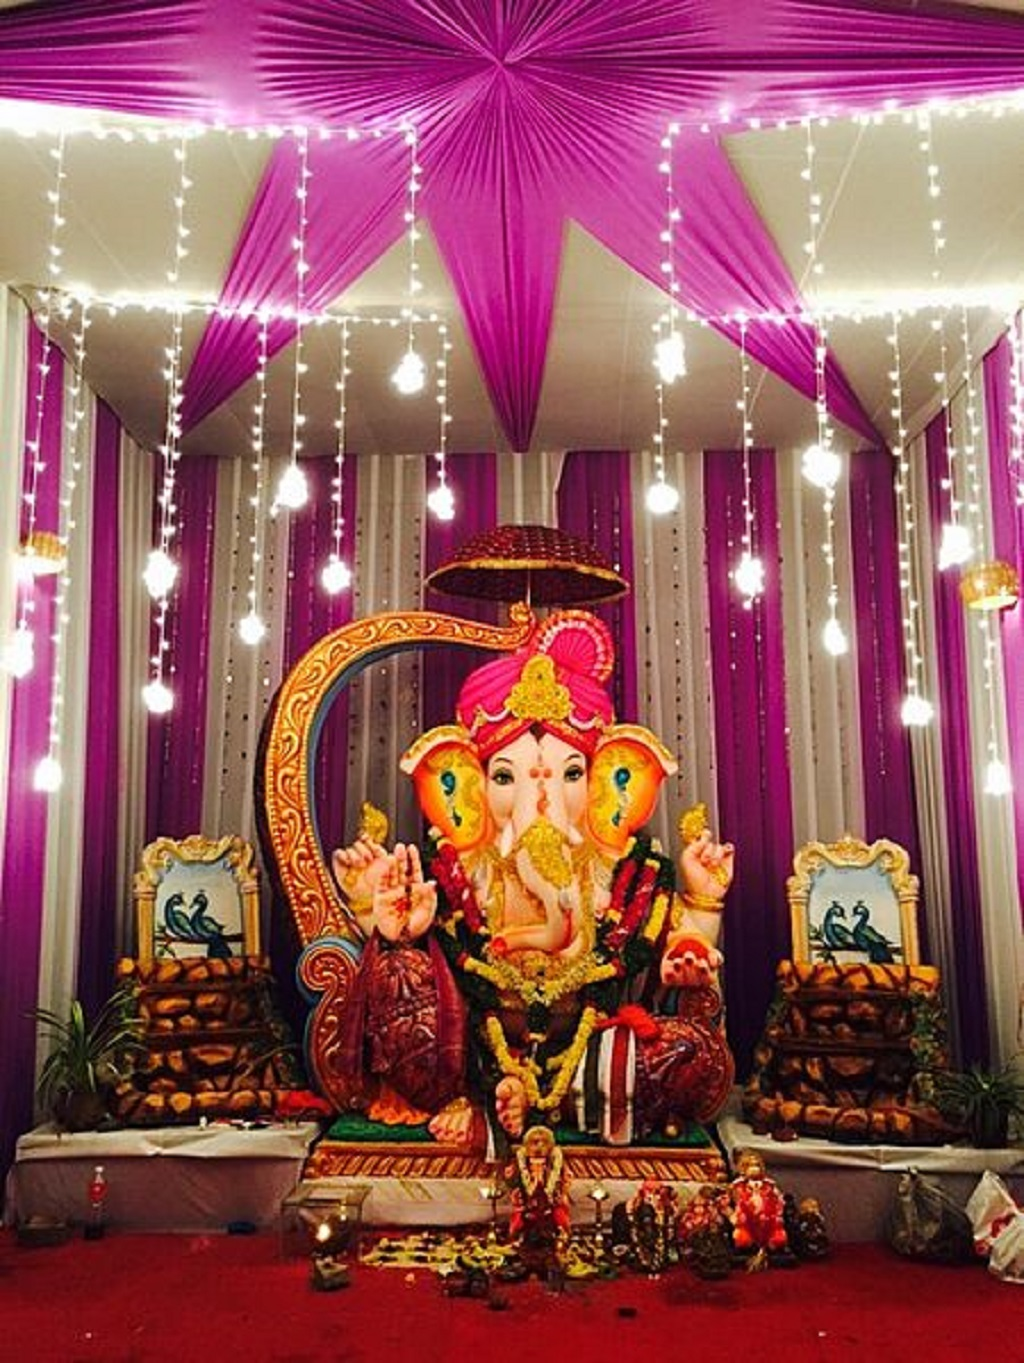 In Pictures India S Spectacular Ganesh Chaturthi Festival